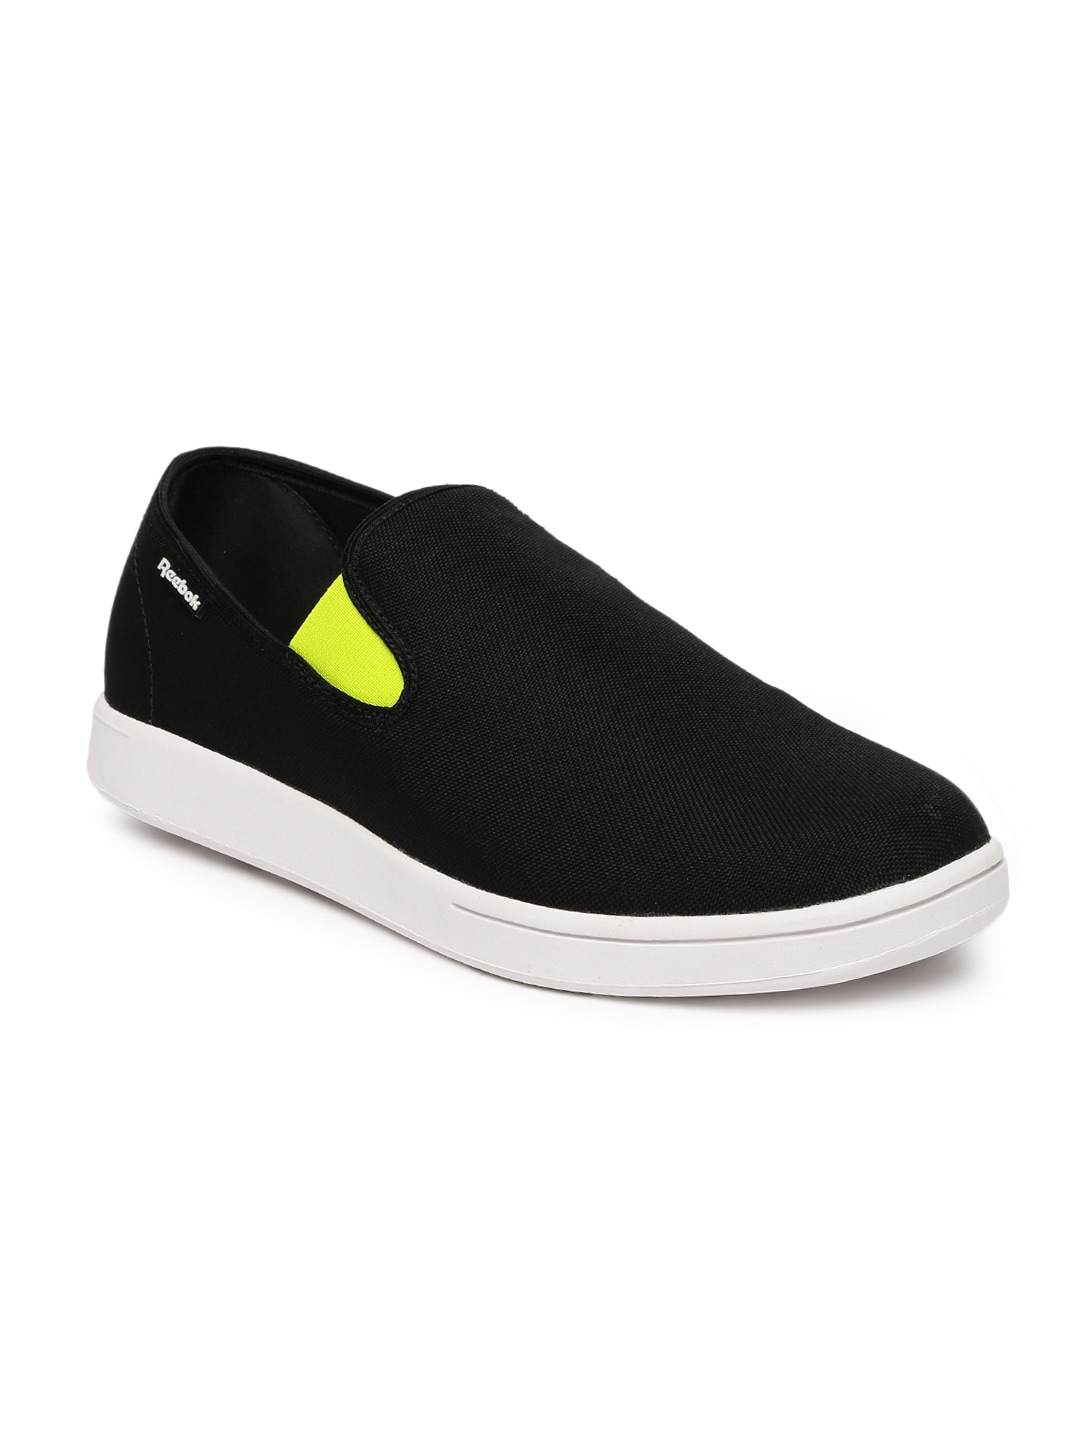 d74aeccdc3e Reebok Slip On Shoes - Buy Reebok Slip On Shoes online in India